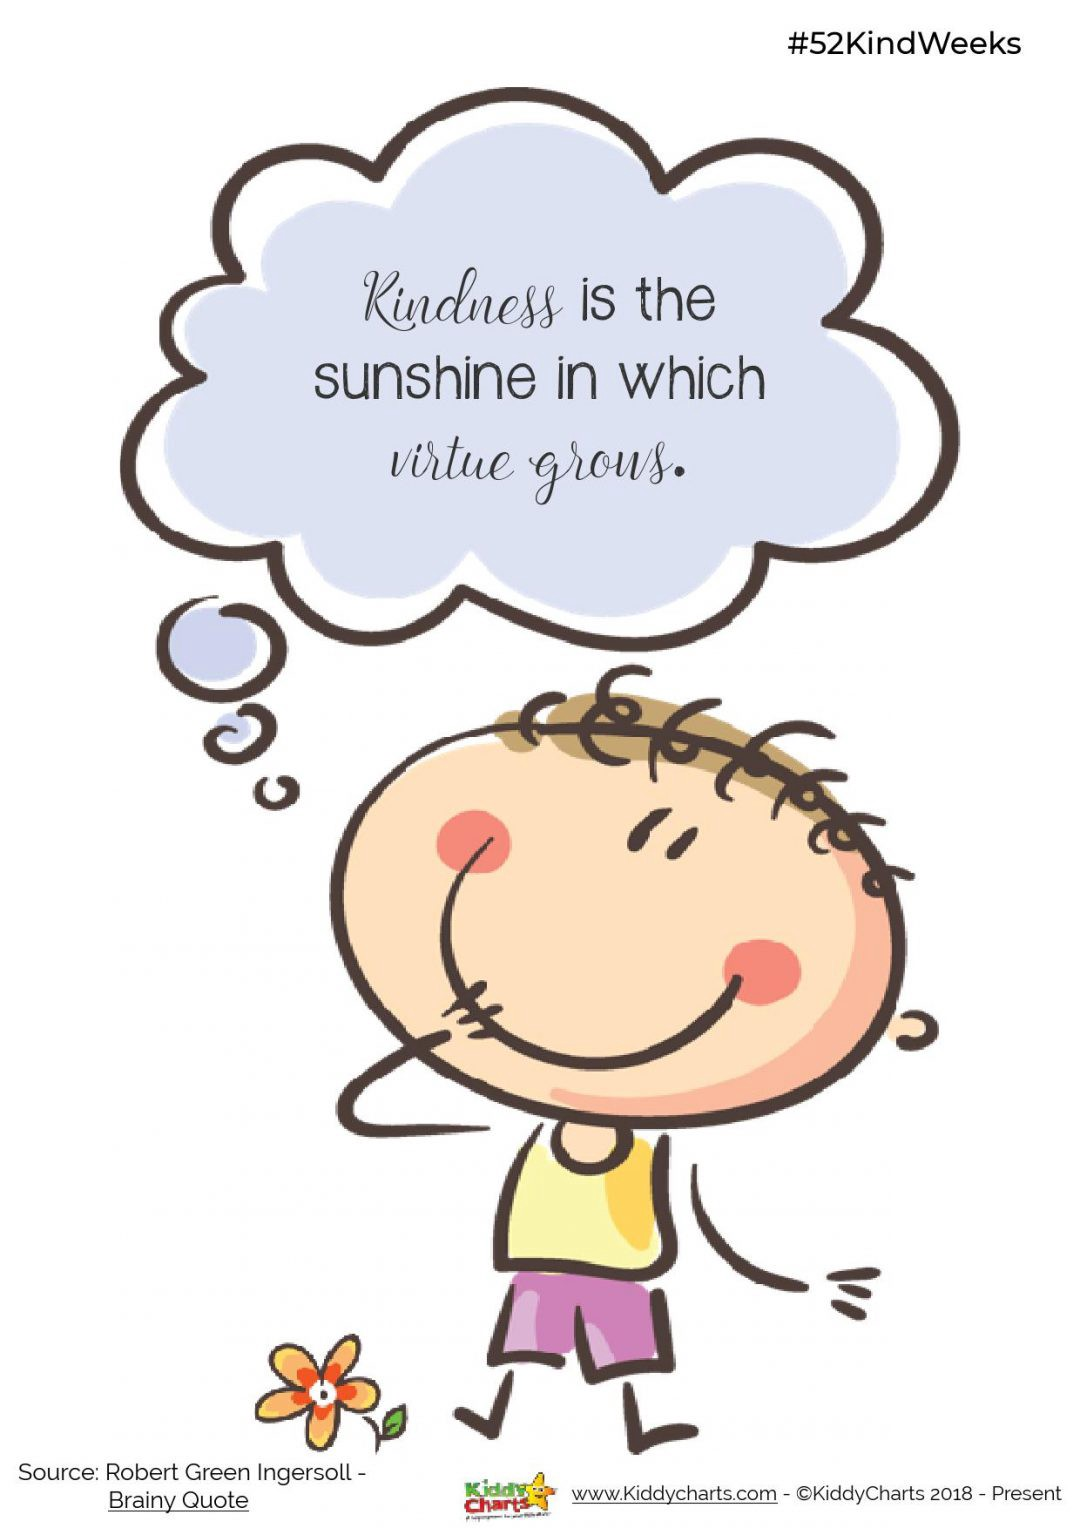 Kindness clipart smiling face. Printable posters for kids